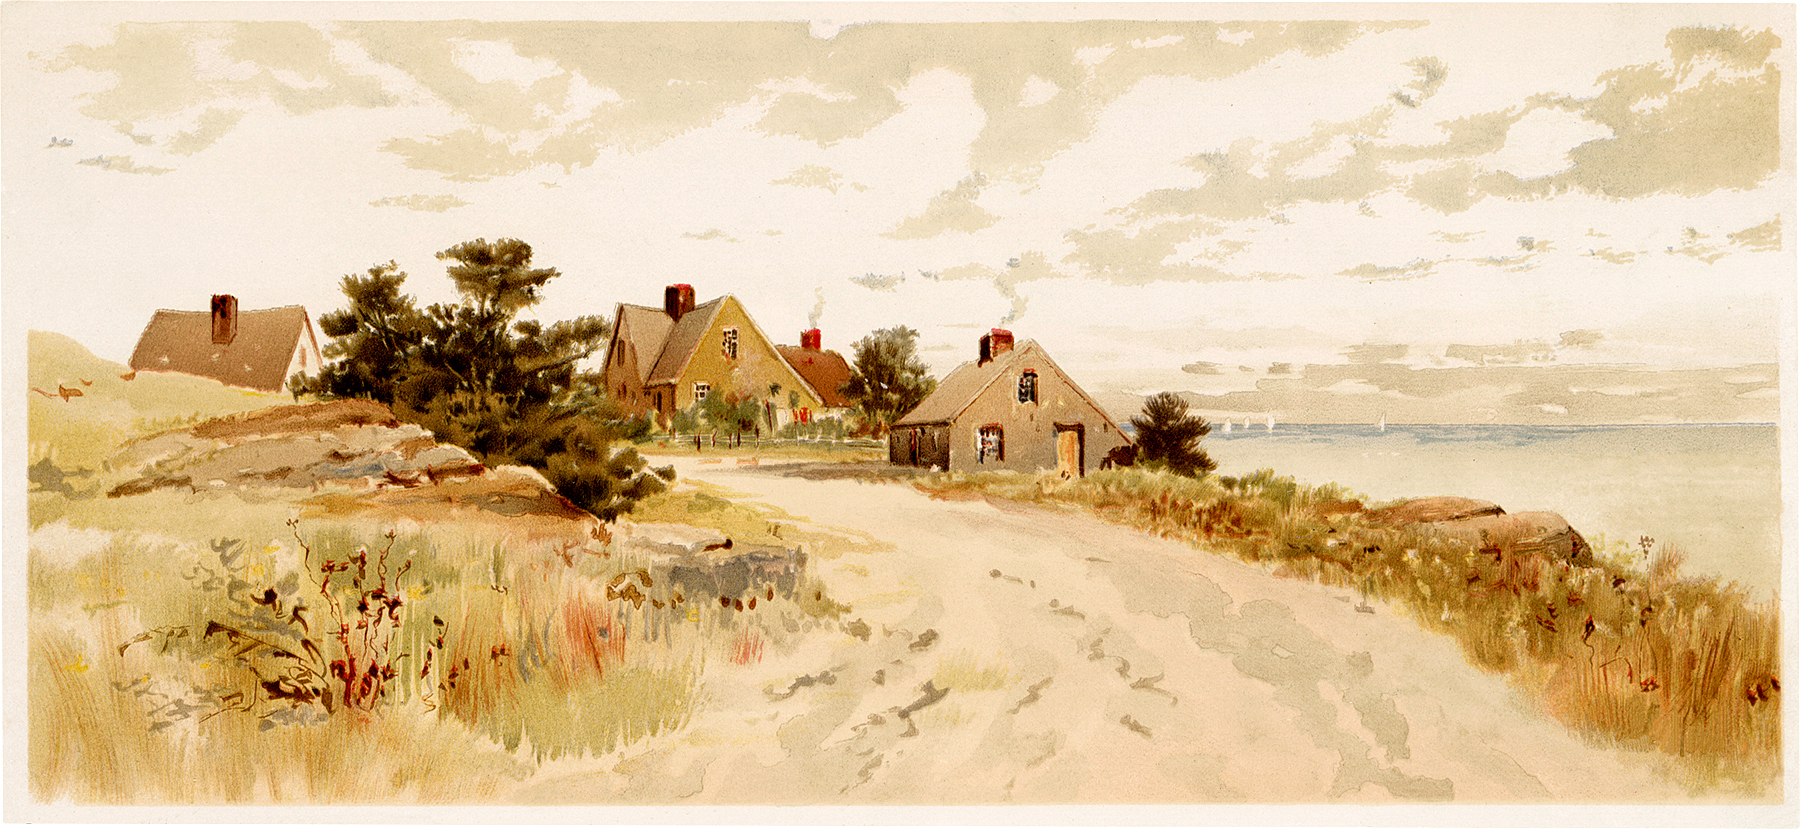 Vintage Seaside Cottage Image